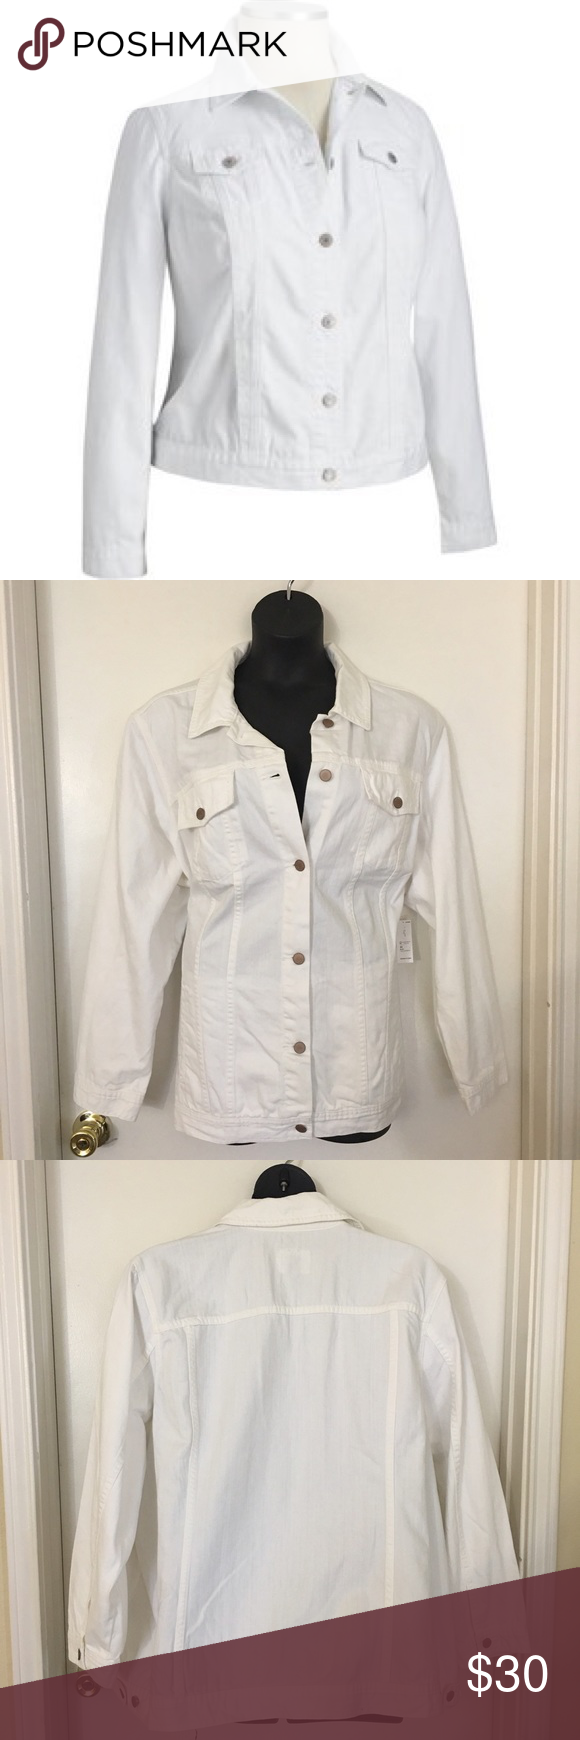 White Denim Jacket Great basic piece for any season! NWT - never worn.  Spread collar; six-button placket. Flap-button chest pockets. Contrast topstitching. Welt slant pockets in front. Old Navy Jackets & Coats Jean Jackets